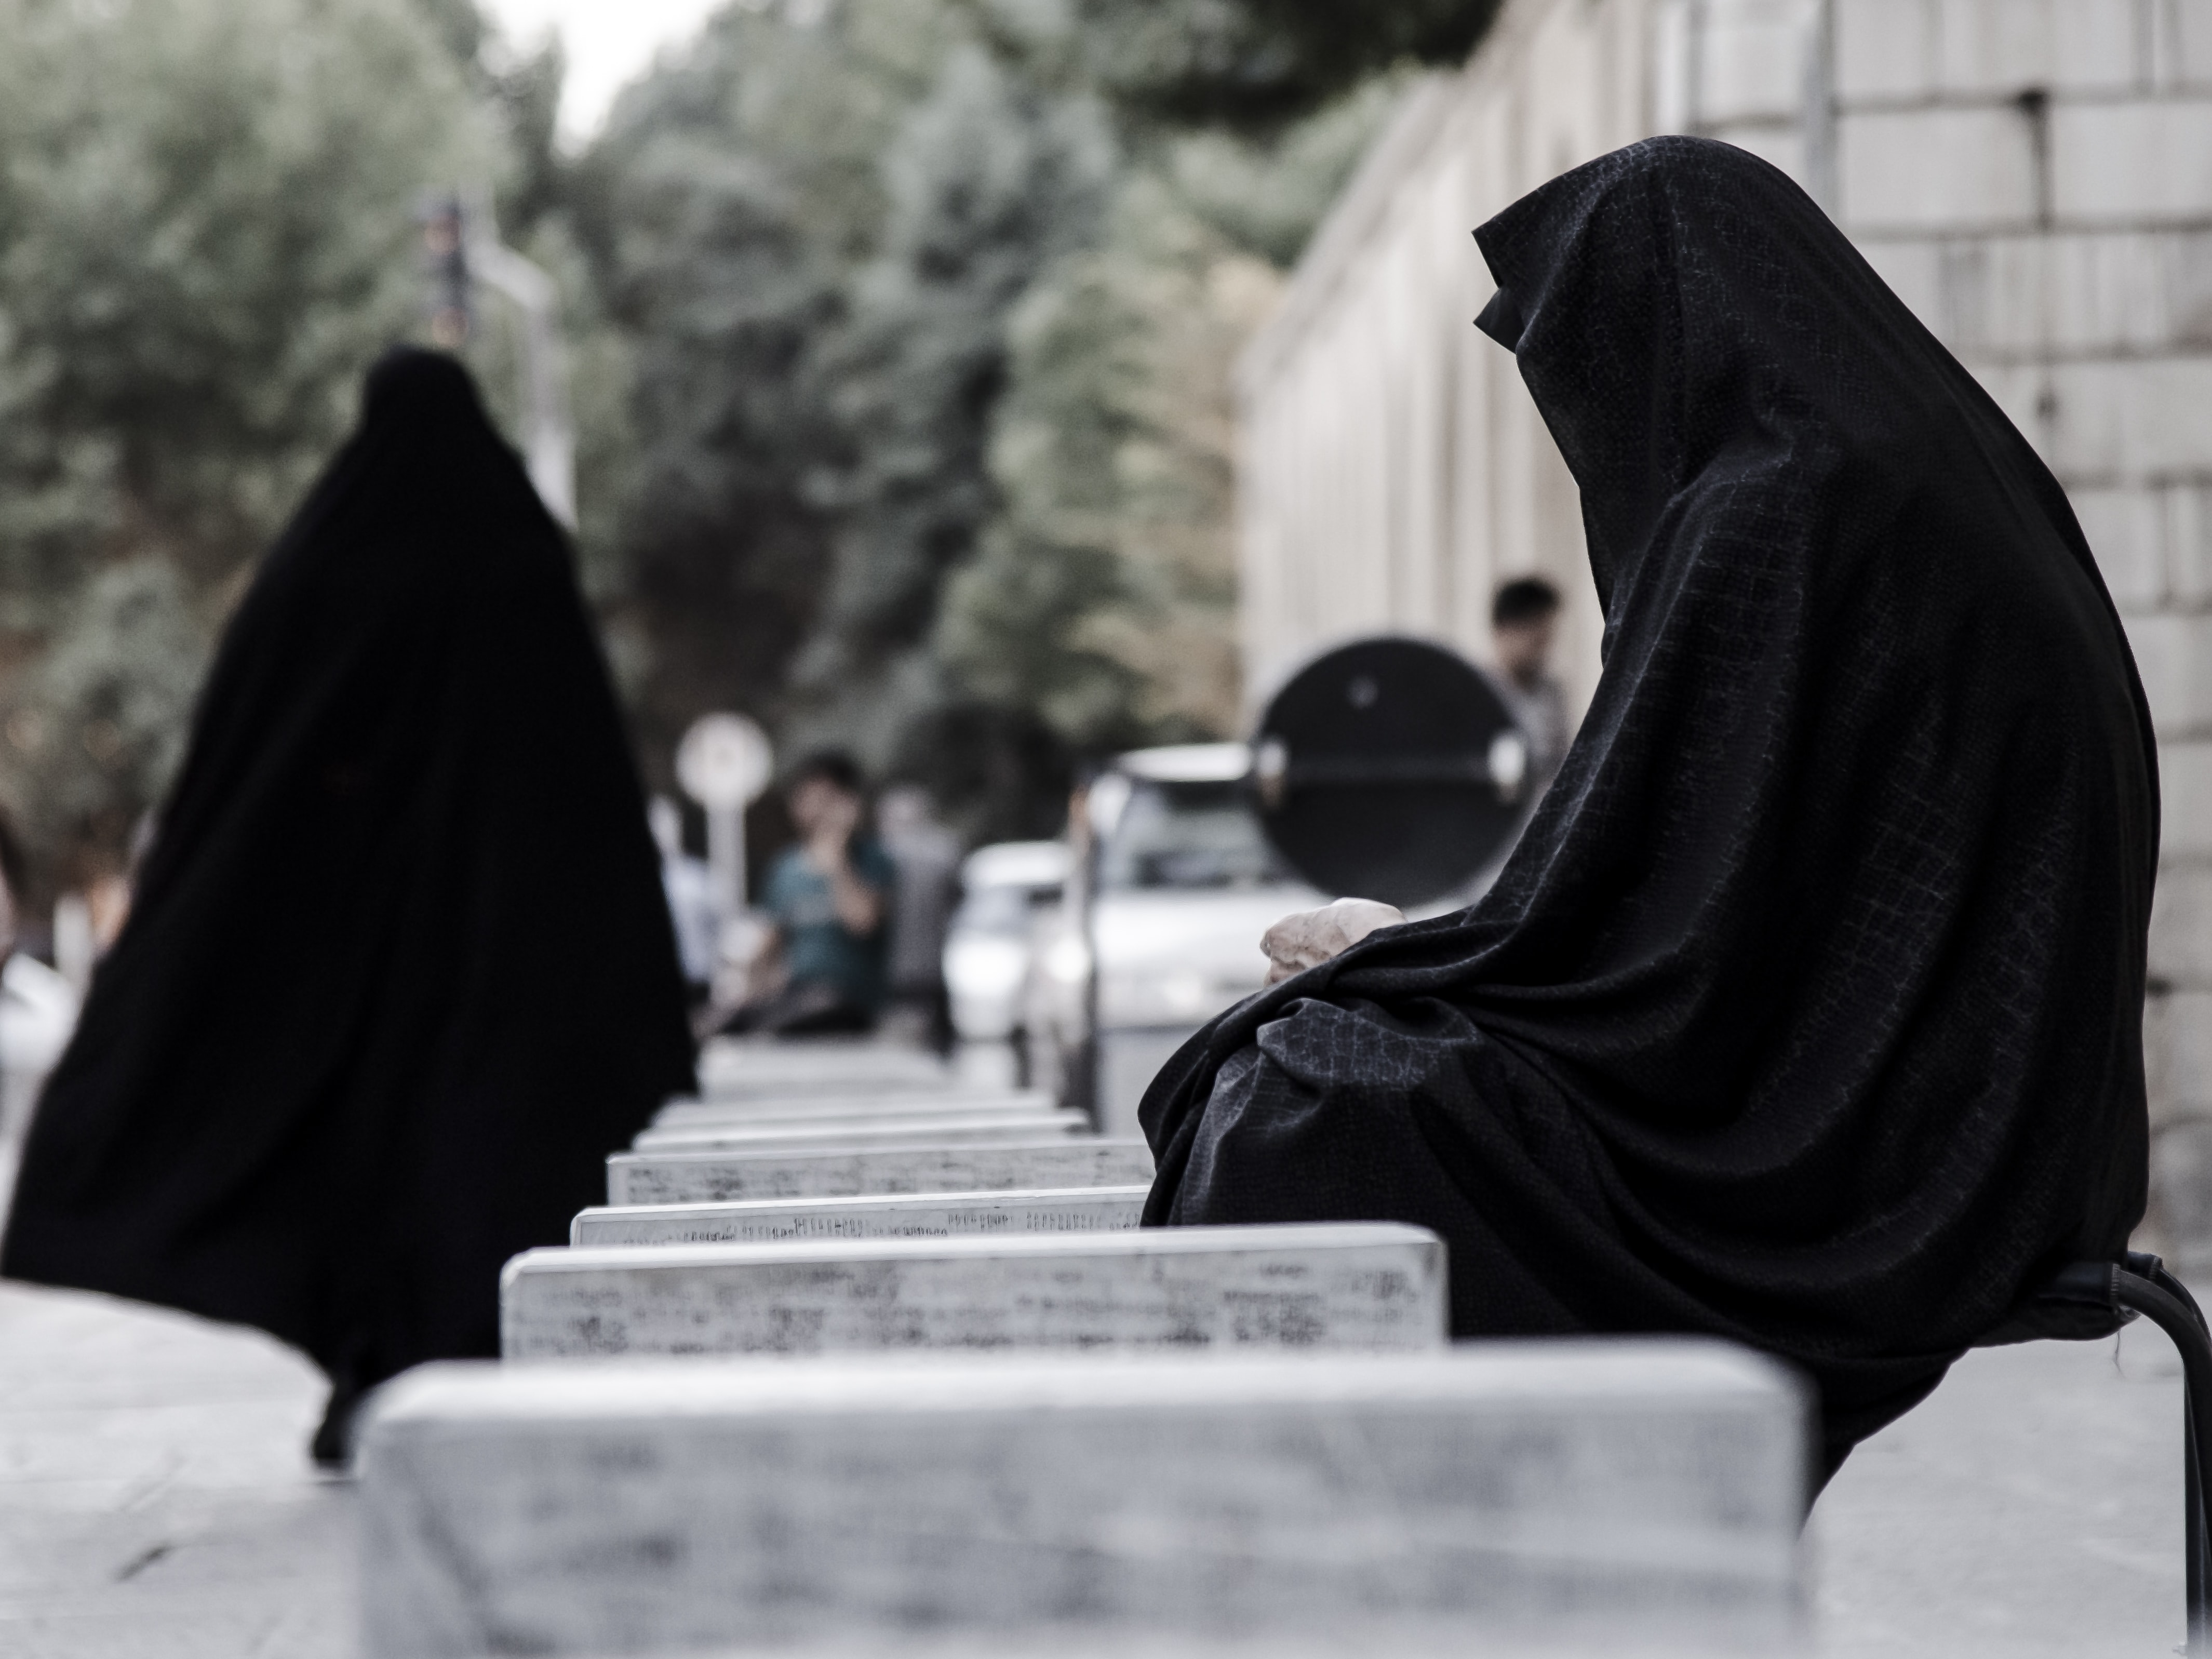 People wearing black burka outfits at a city square in Iran